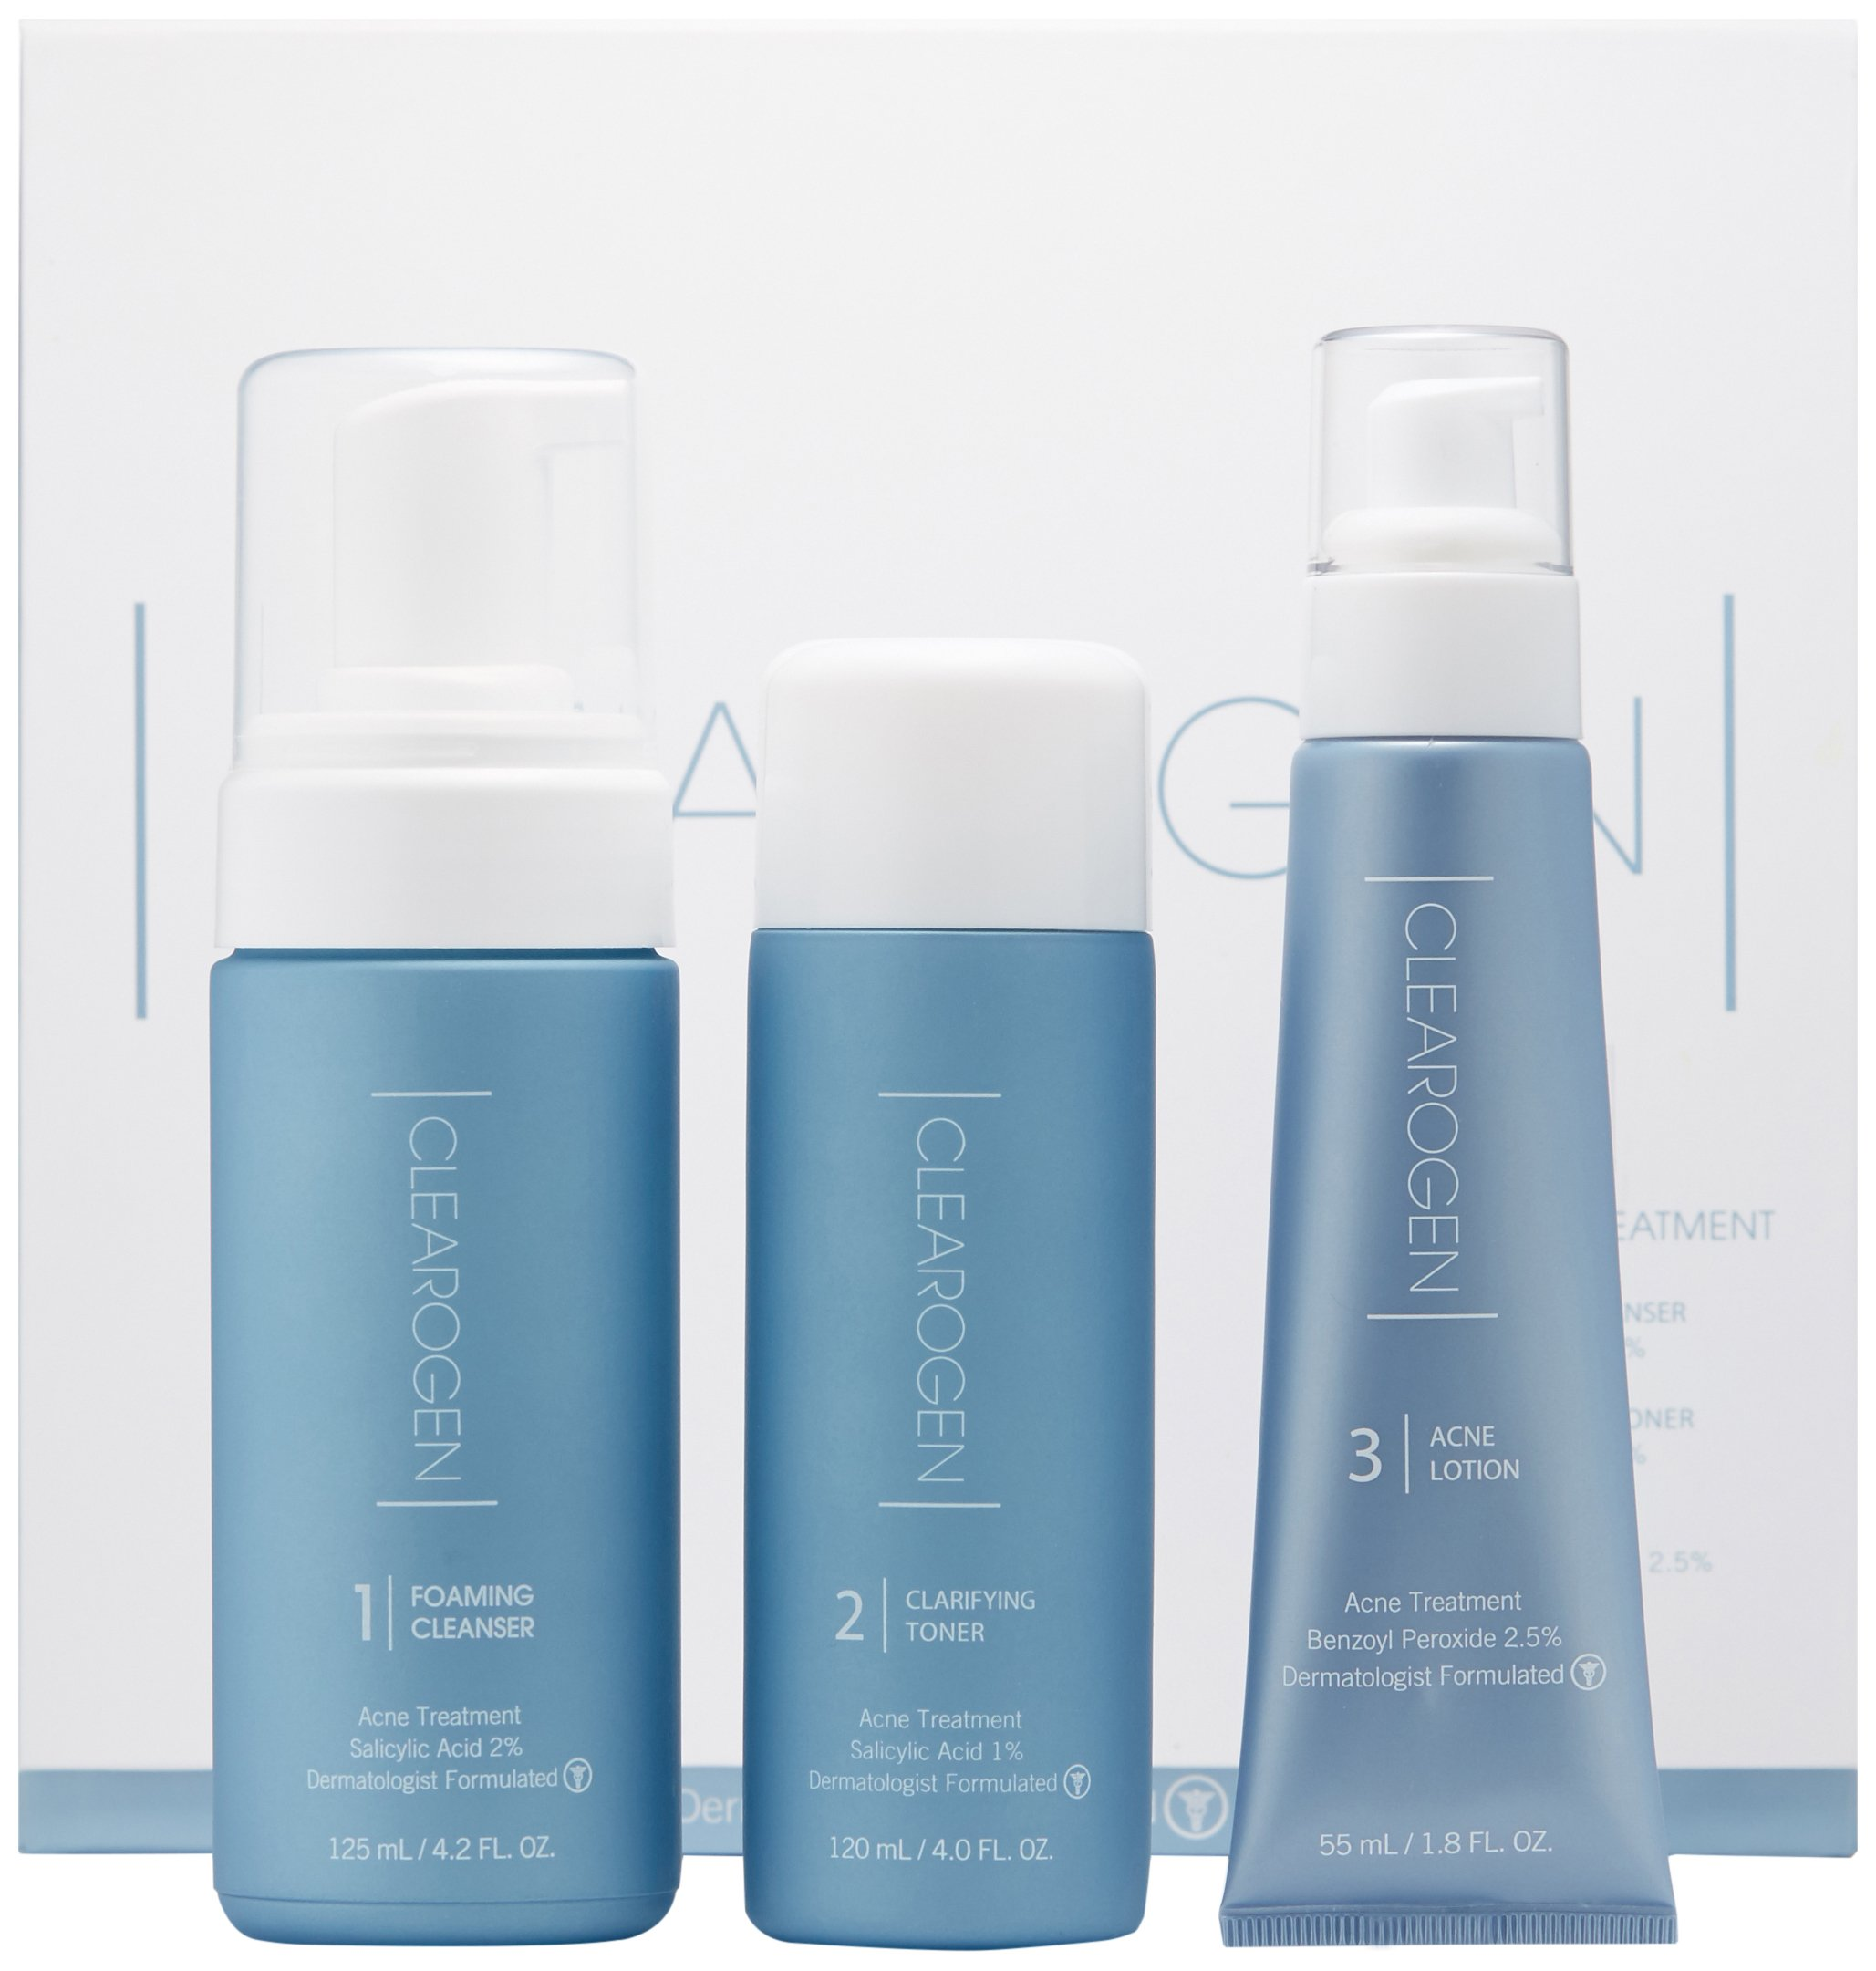 Clearogen Hormonal Acne Solution Natural Anti-DHT Ingredients Deluxe Set Original Formula Benzoyl Peroxide – 2 month supply 3 piece set